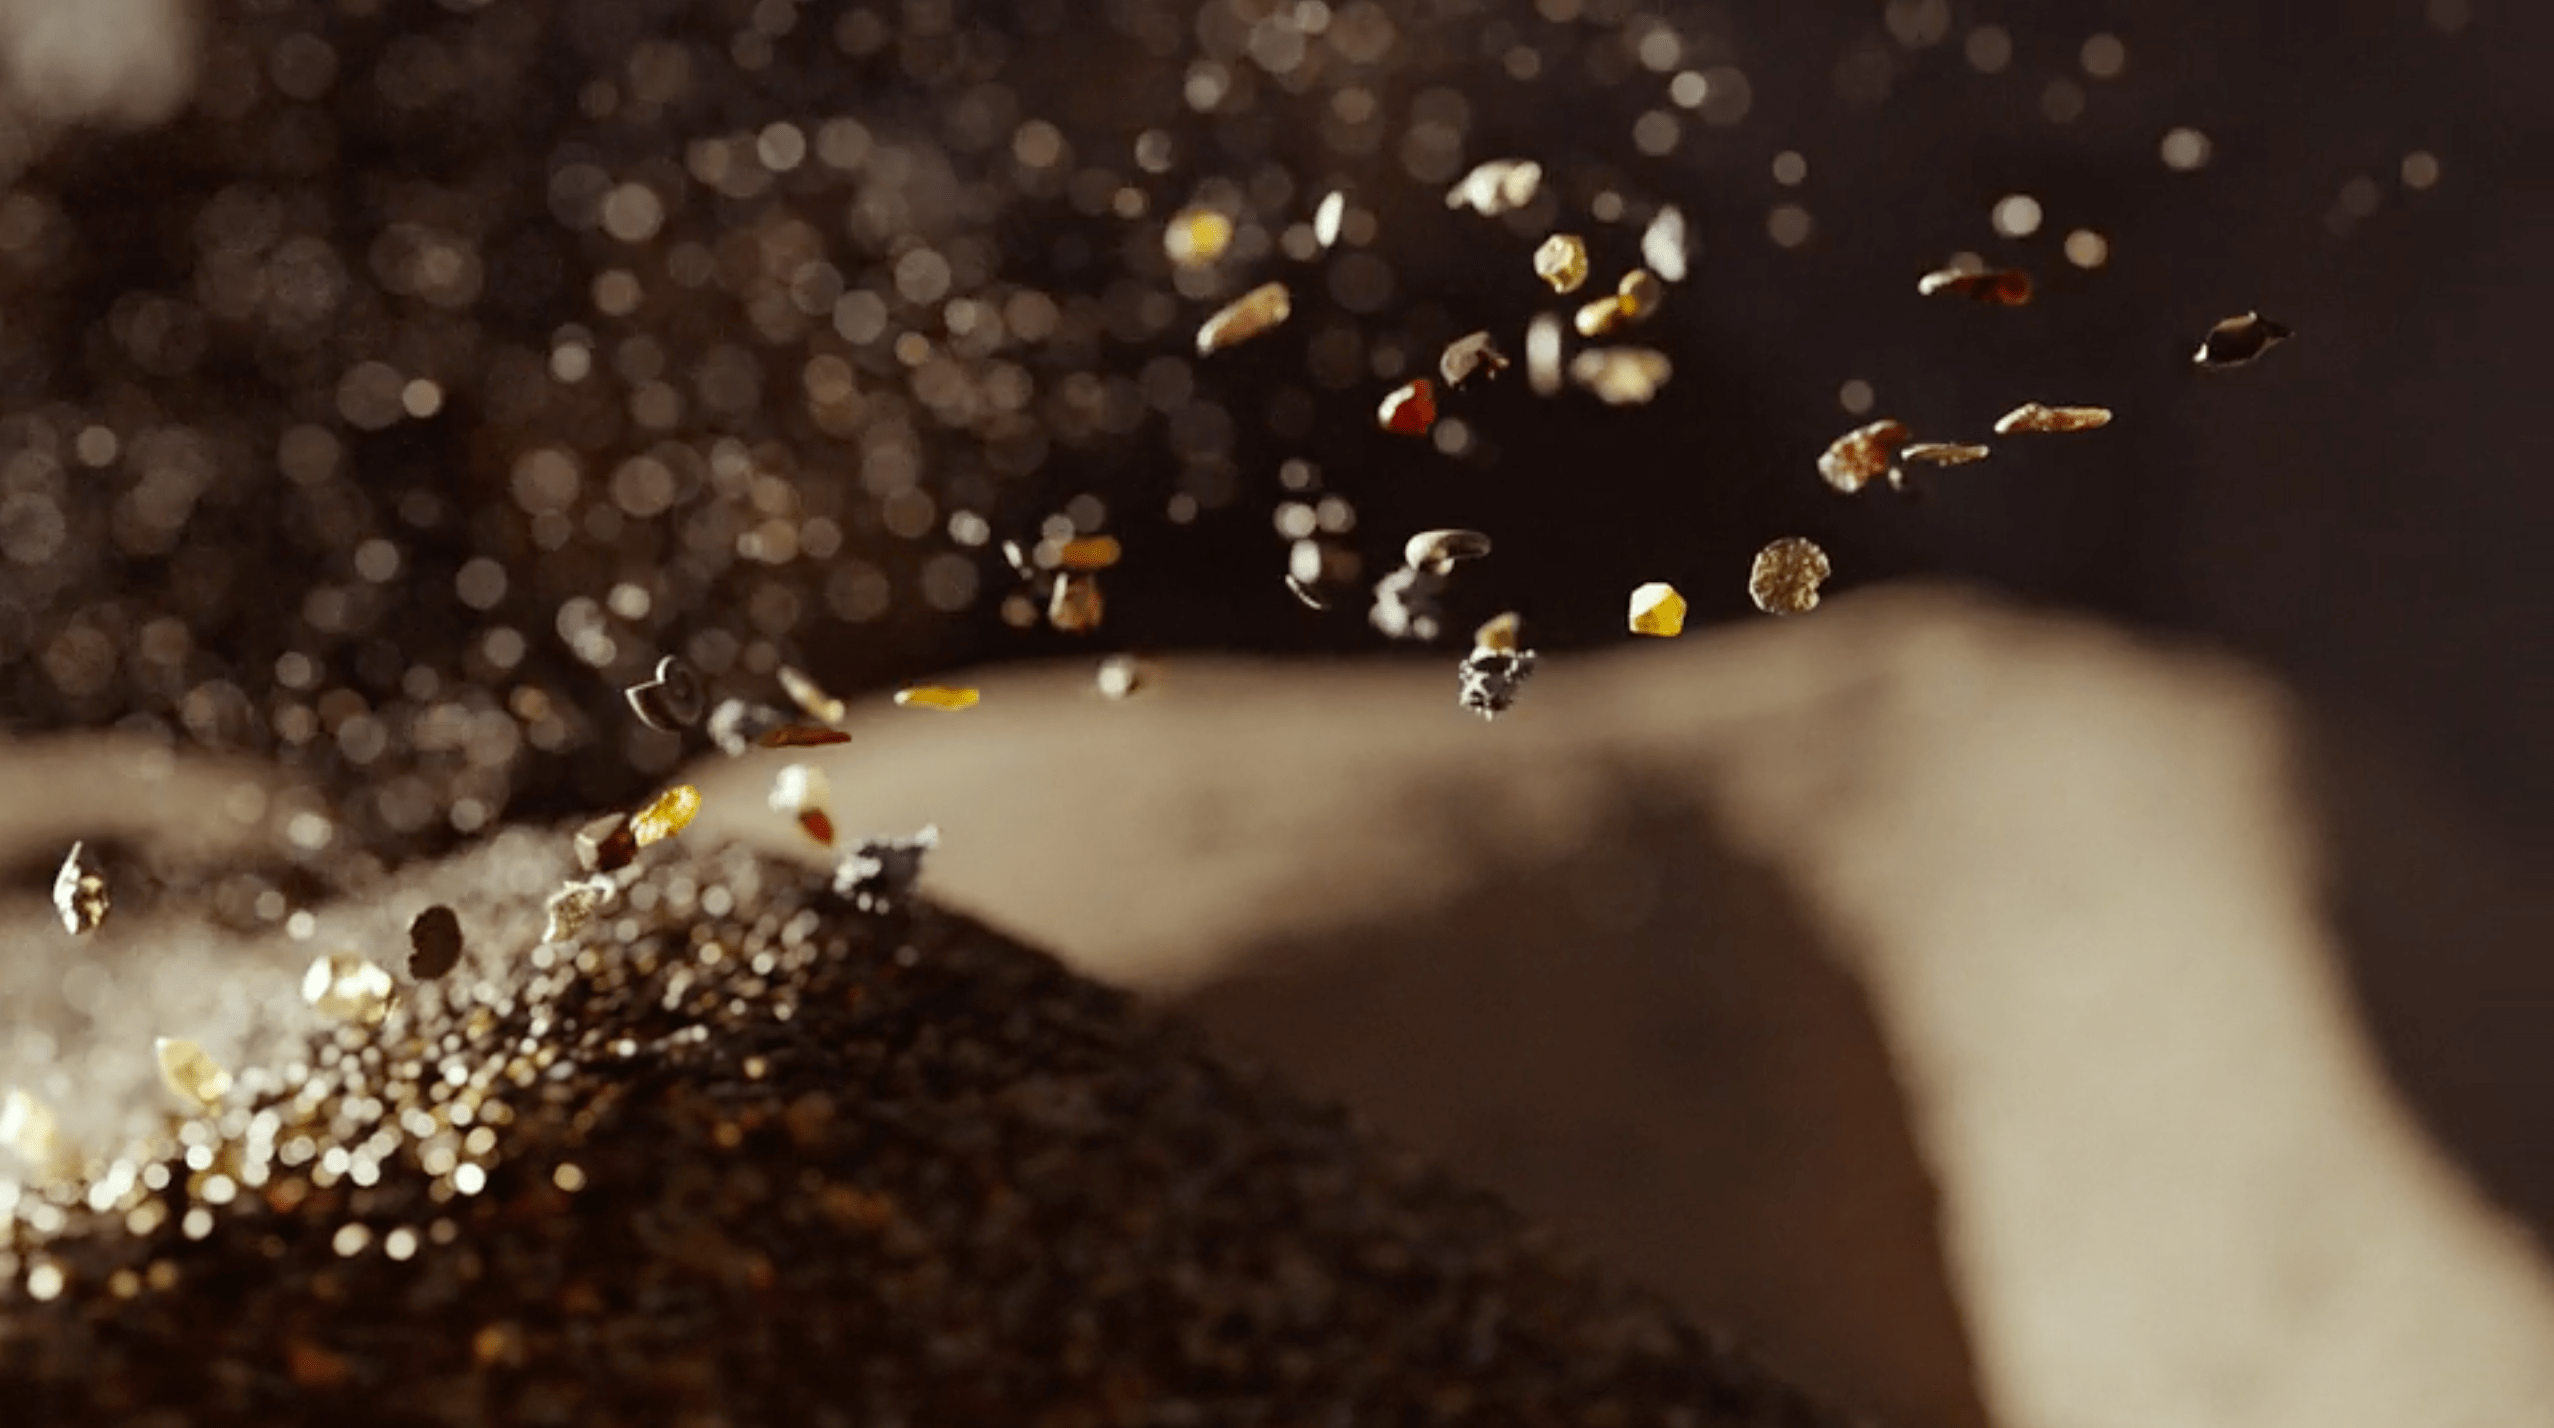 Fragments of shells, crystals and specks of volcanic rock CGI